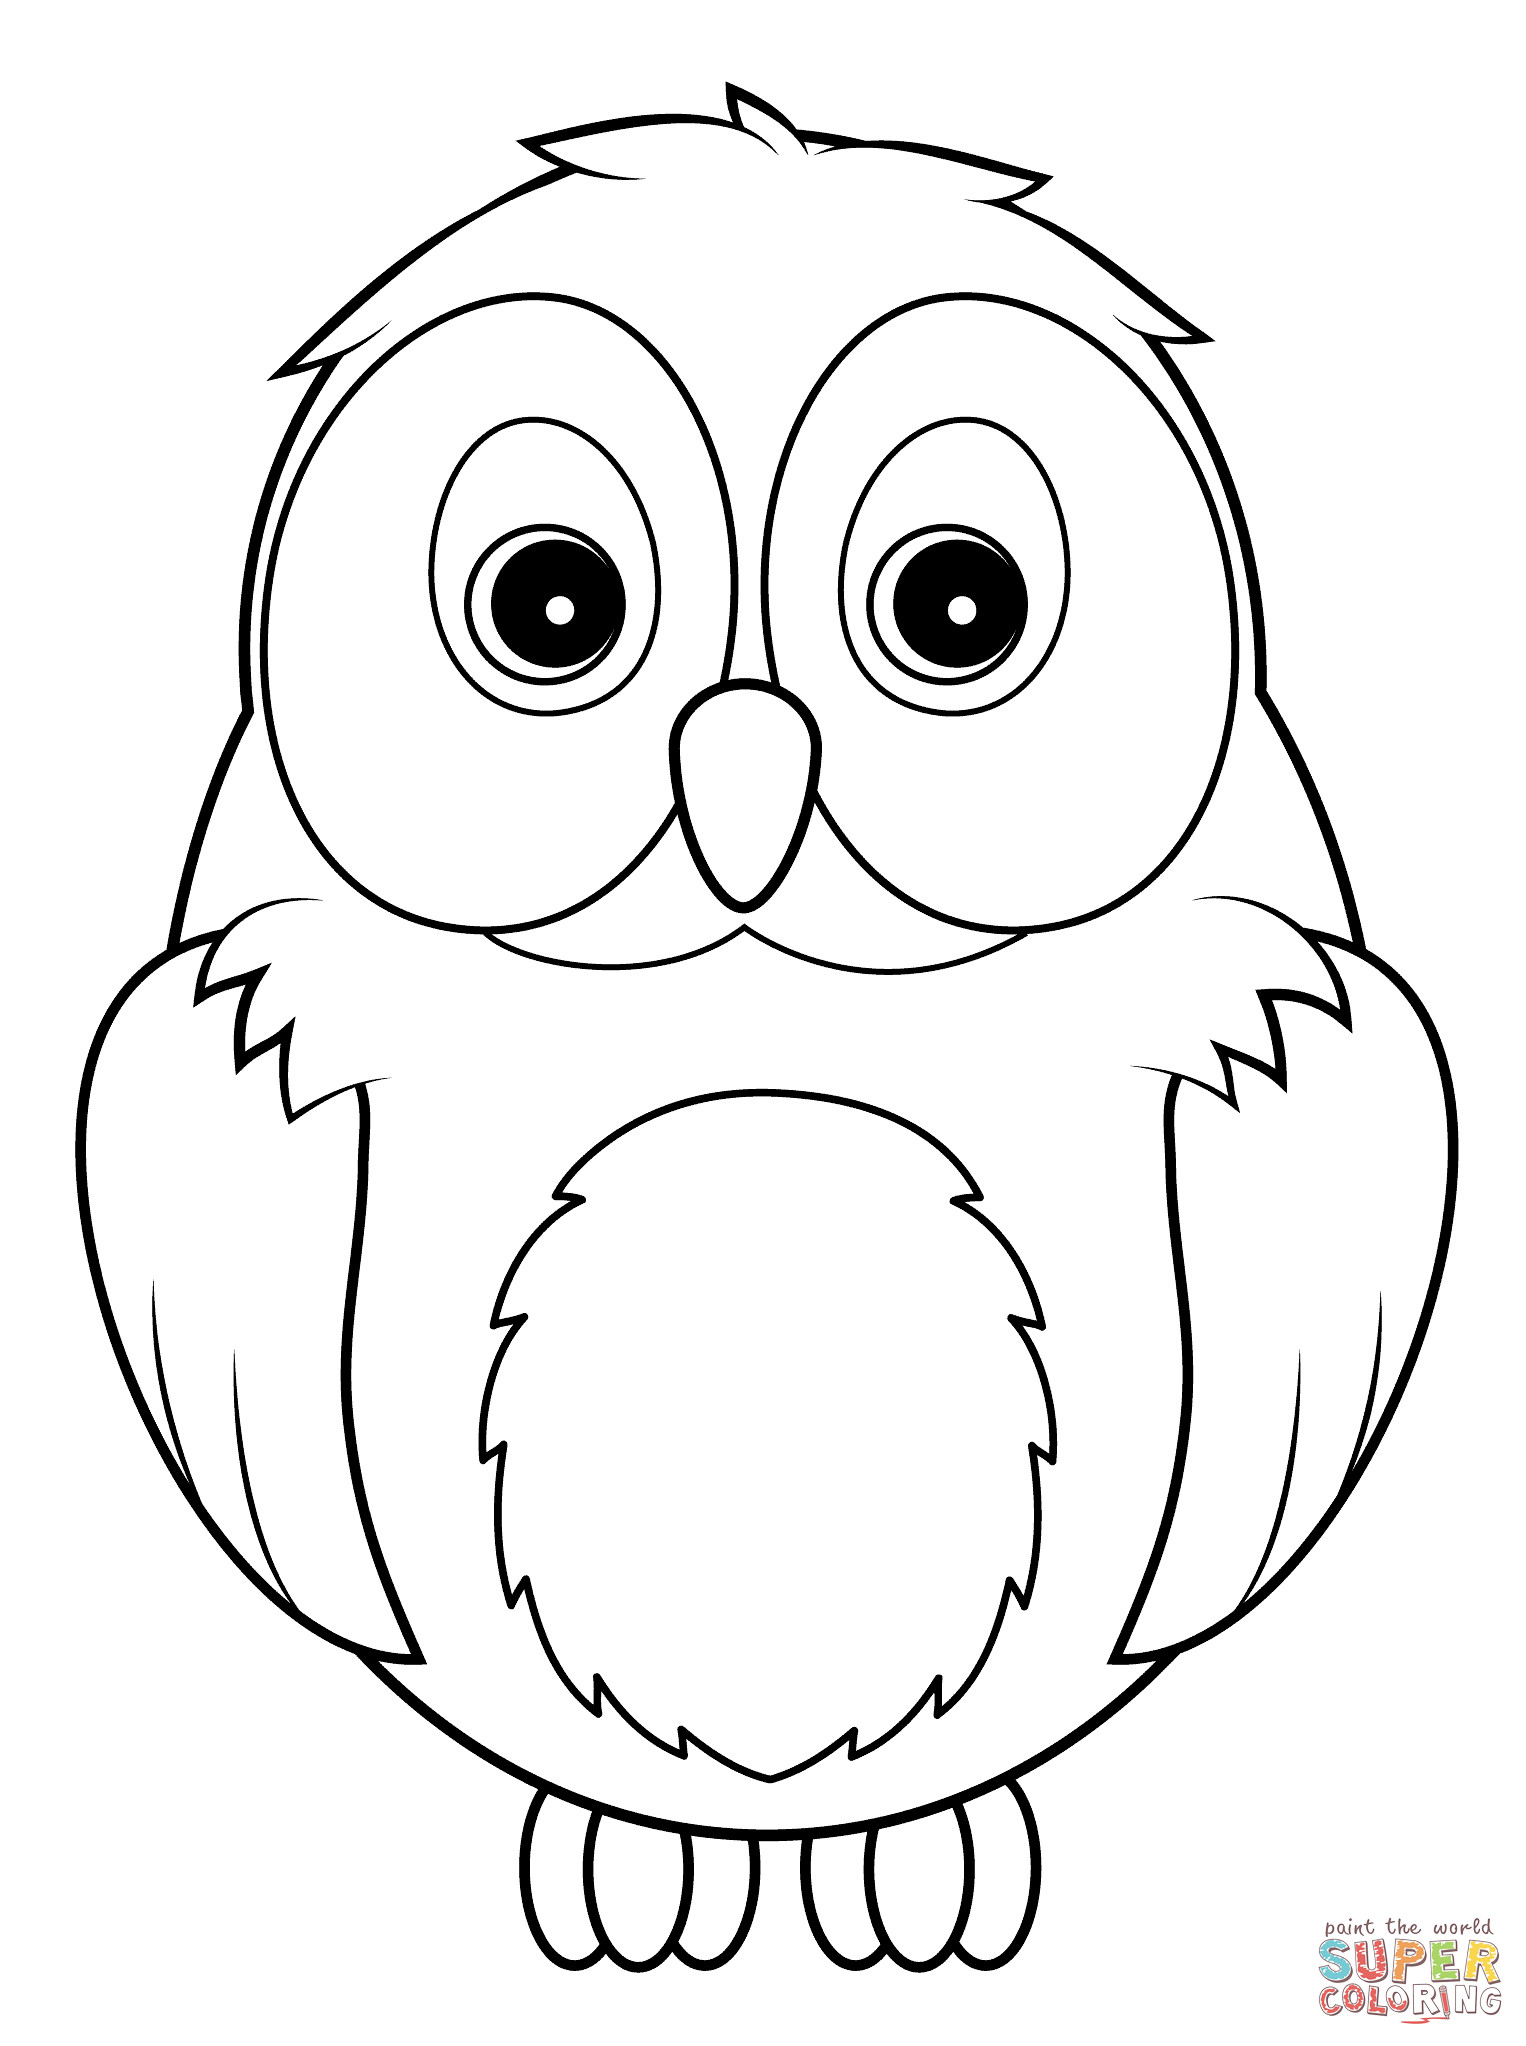 Owl Coloring Pages For Kids Printable  Cute Owl coloring page